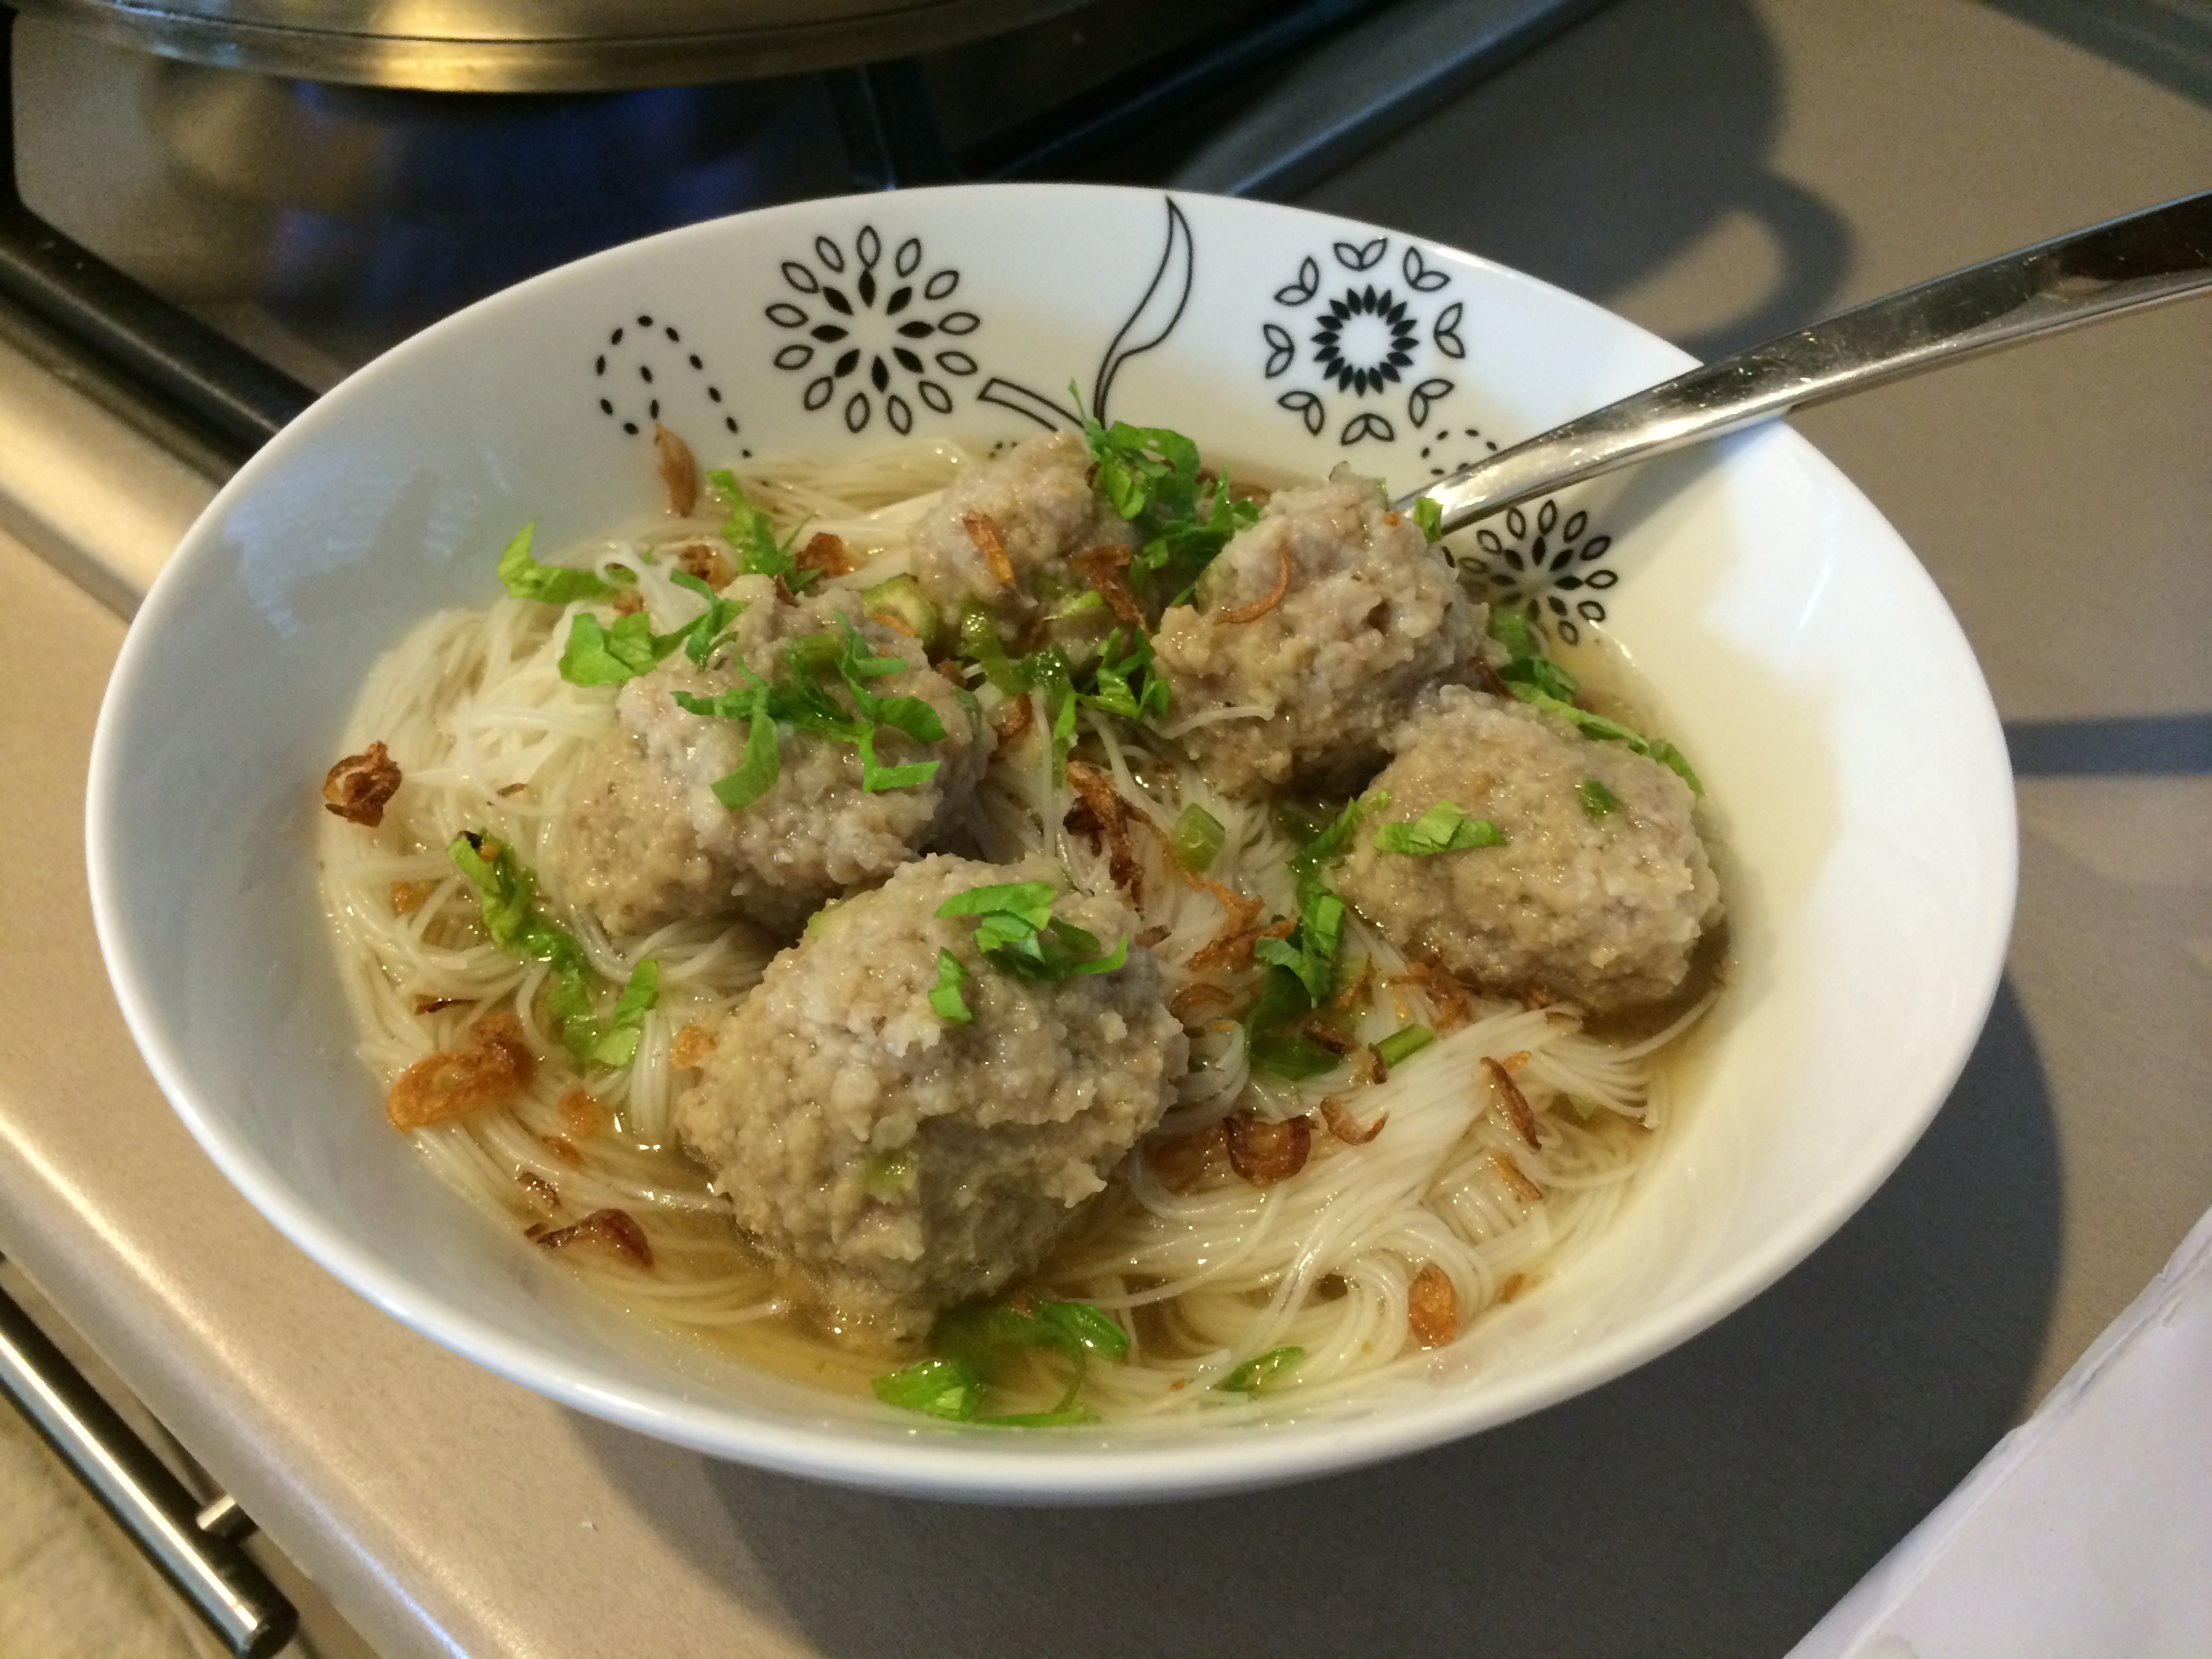 Easy indonesian capcay recipe aries kitchen bakso recipe indonesian meatballs soup forumfinder Images